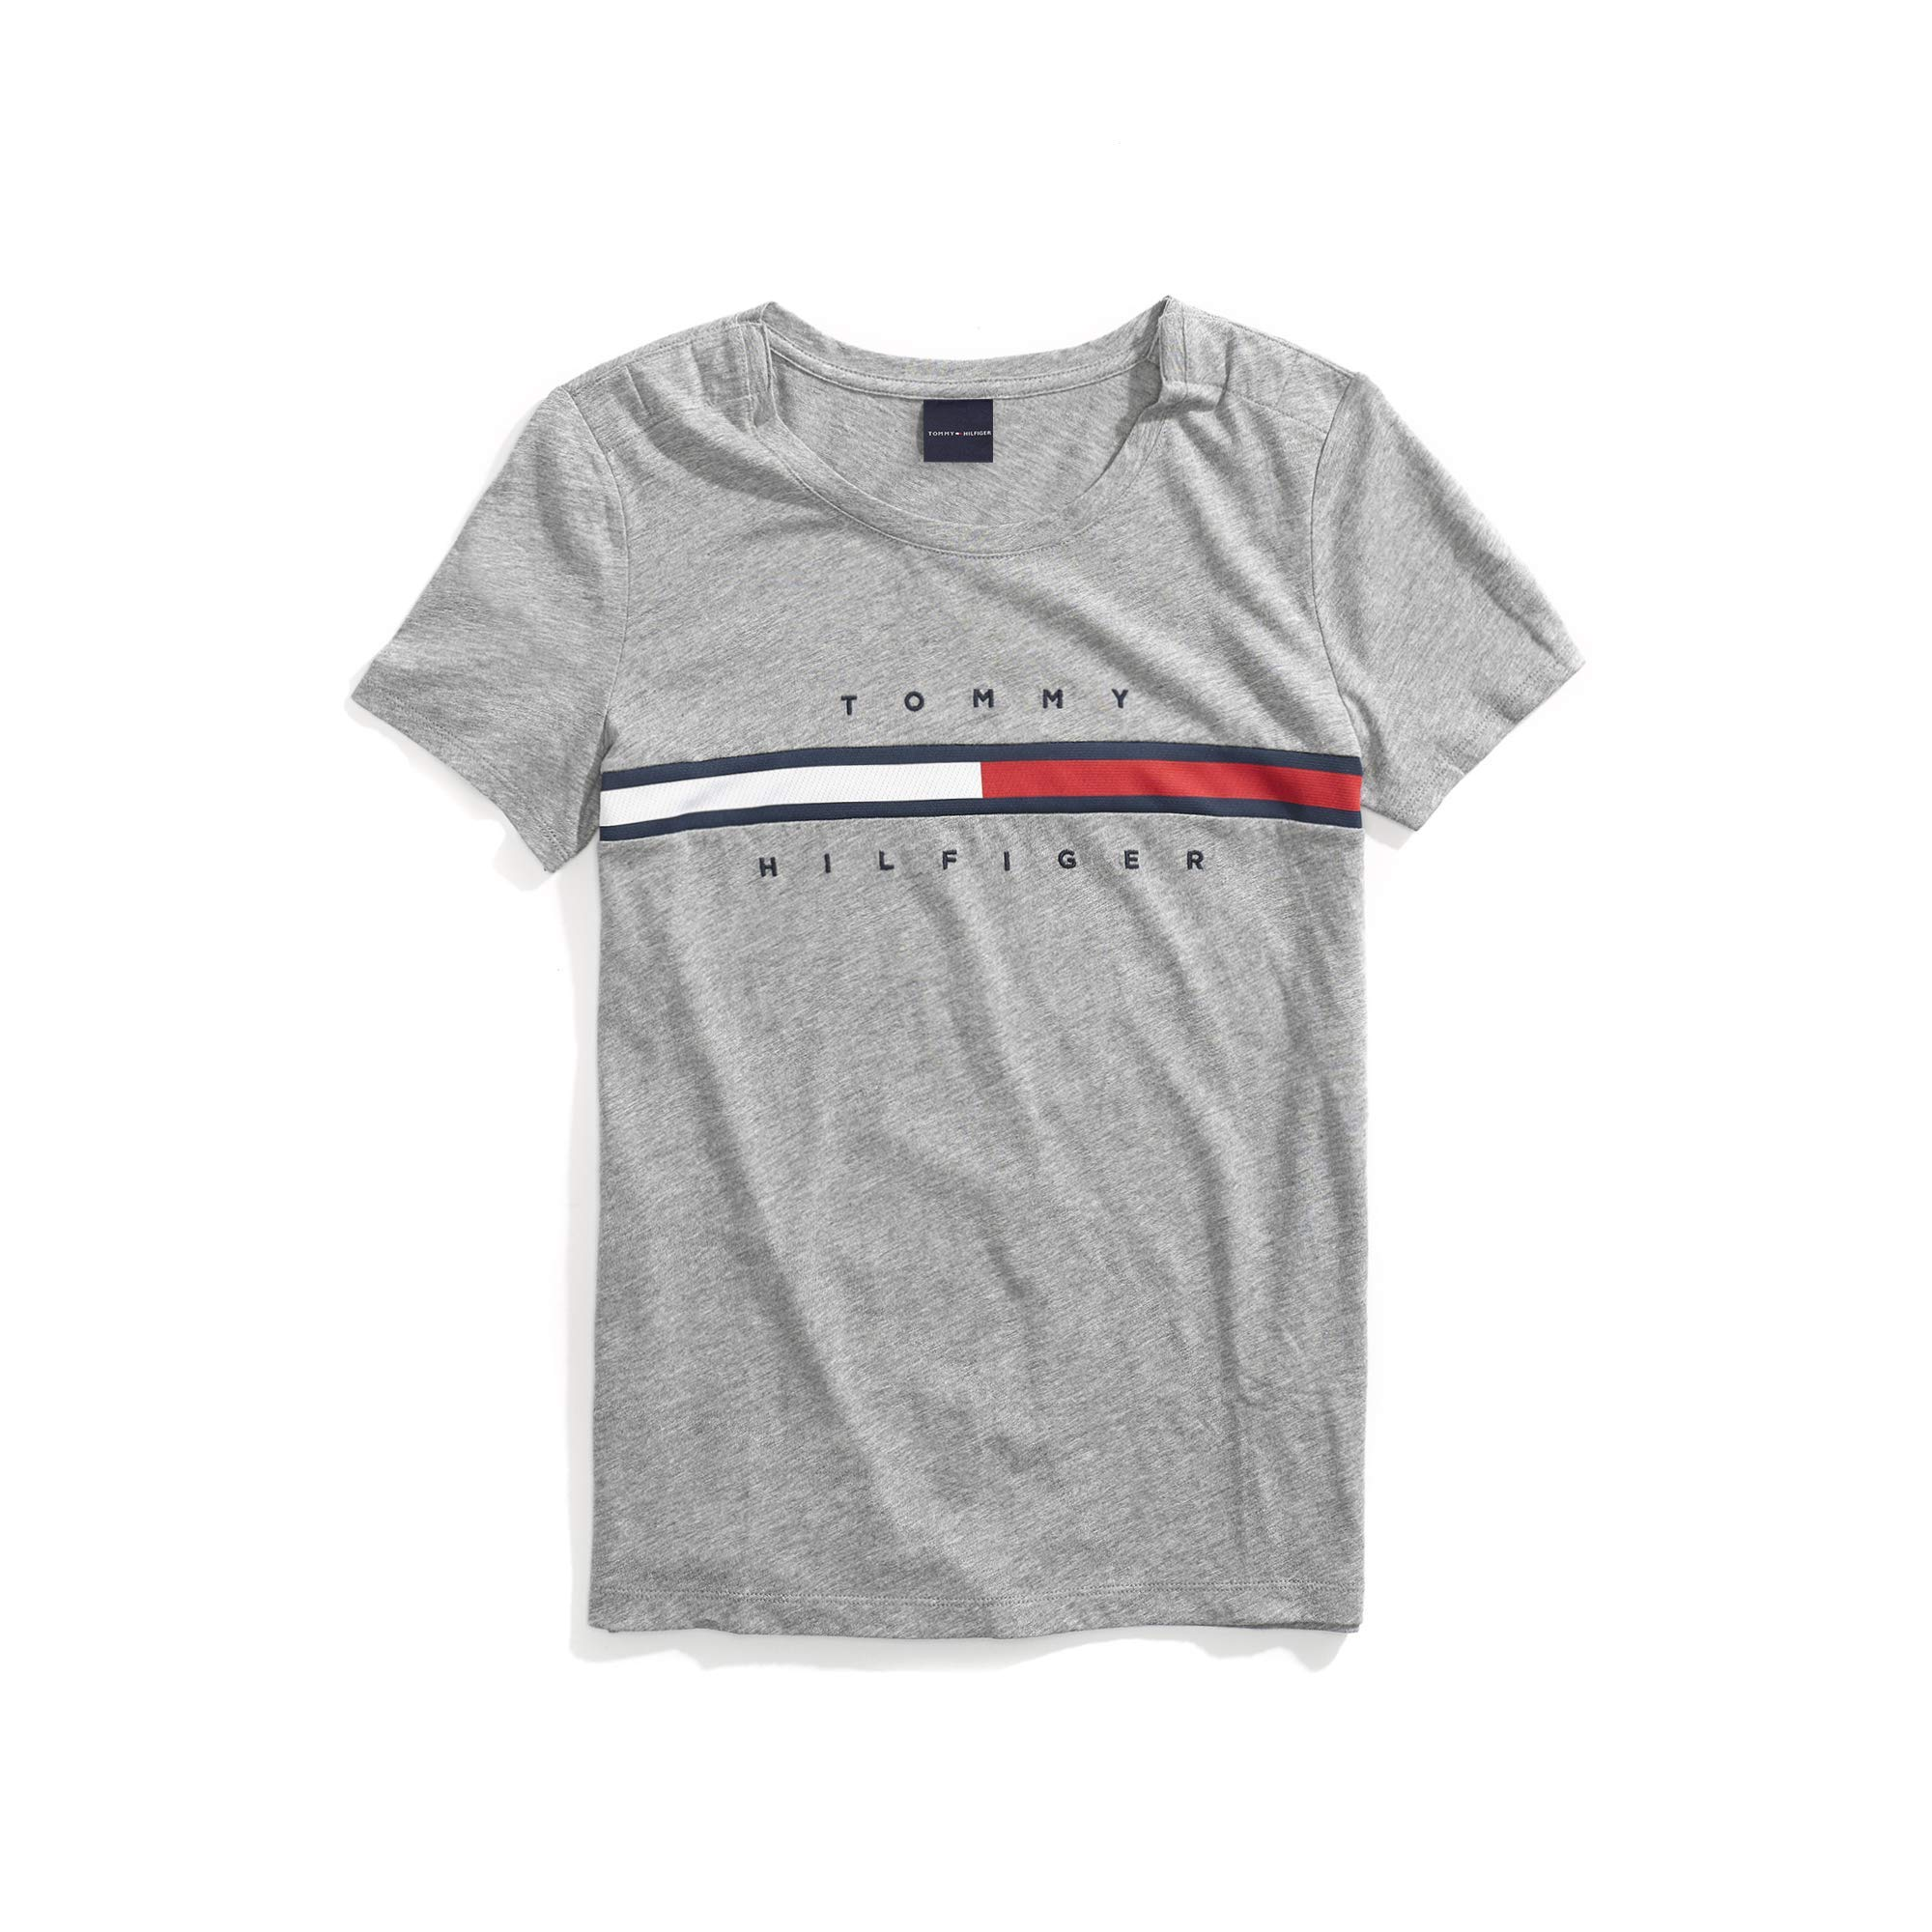 1a5bf5d06aad Galleon - Tommy Hilfiger Women's Adaptive T Shirt With Magnetic Closure  Signature Stripe Tee, Cs Medium Grey Hearope, X-Small